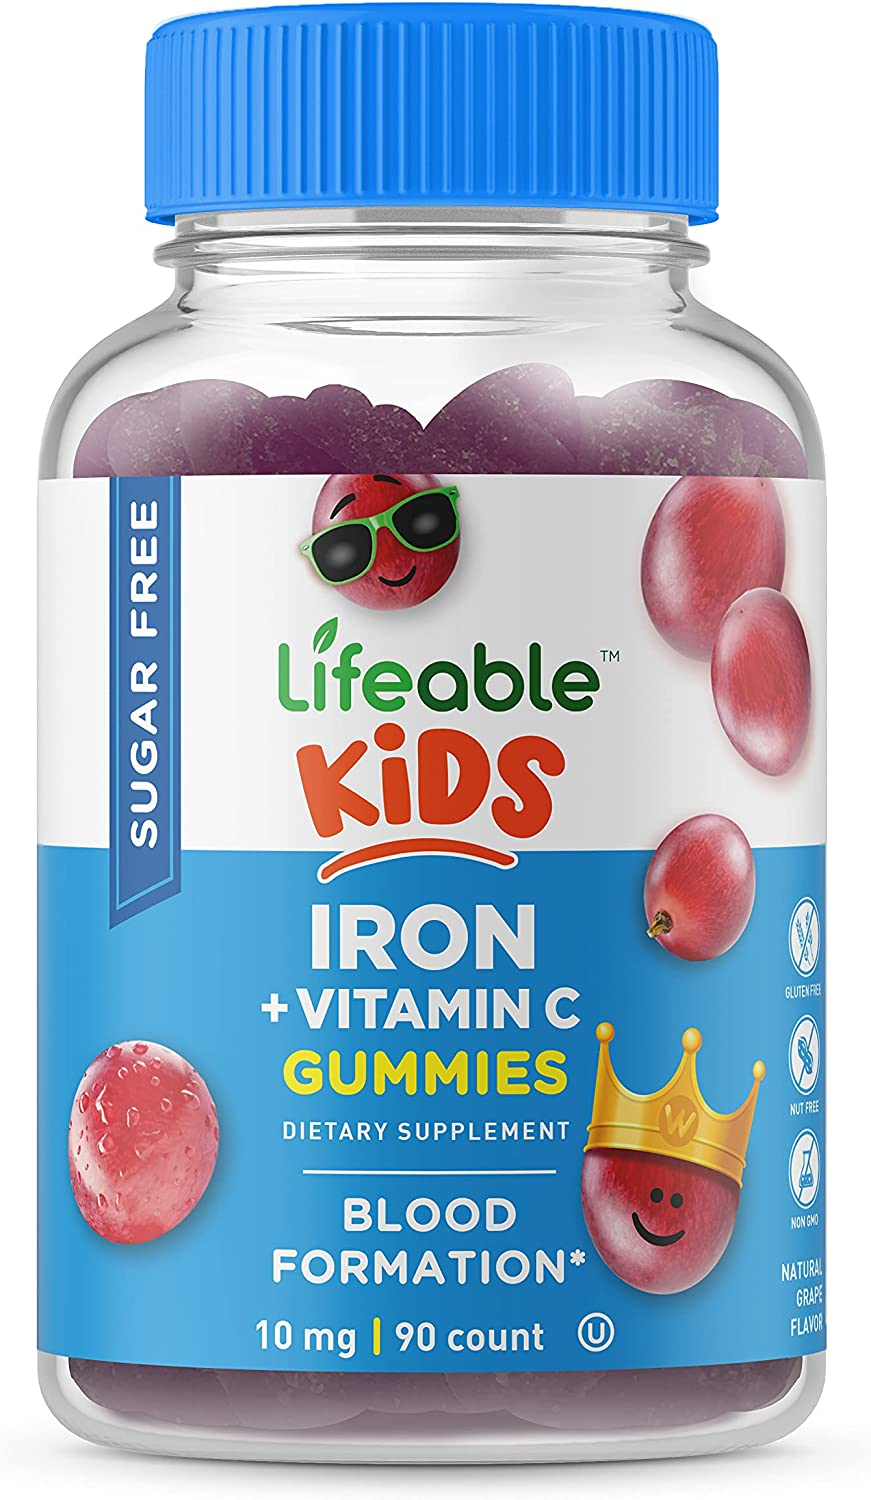 Lifeable Sugar Free Iron Dedication for Kids Vitamin C with Many popular brands 1 –